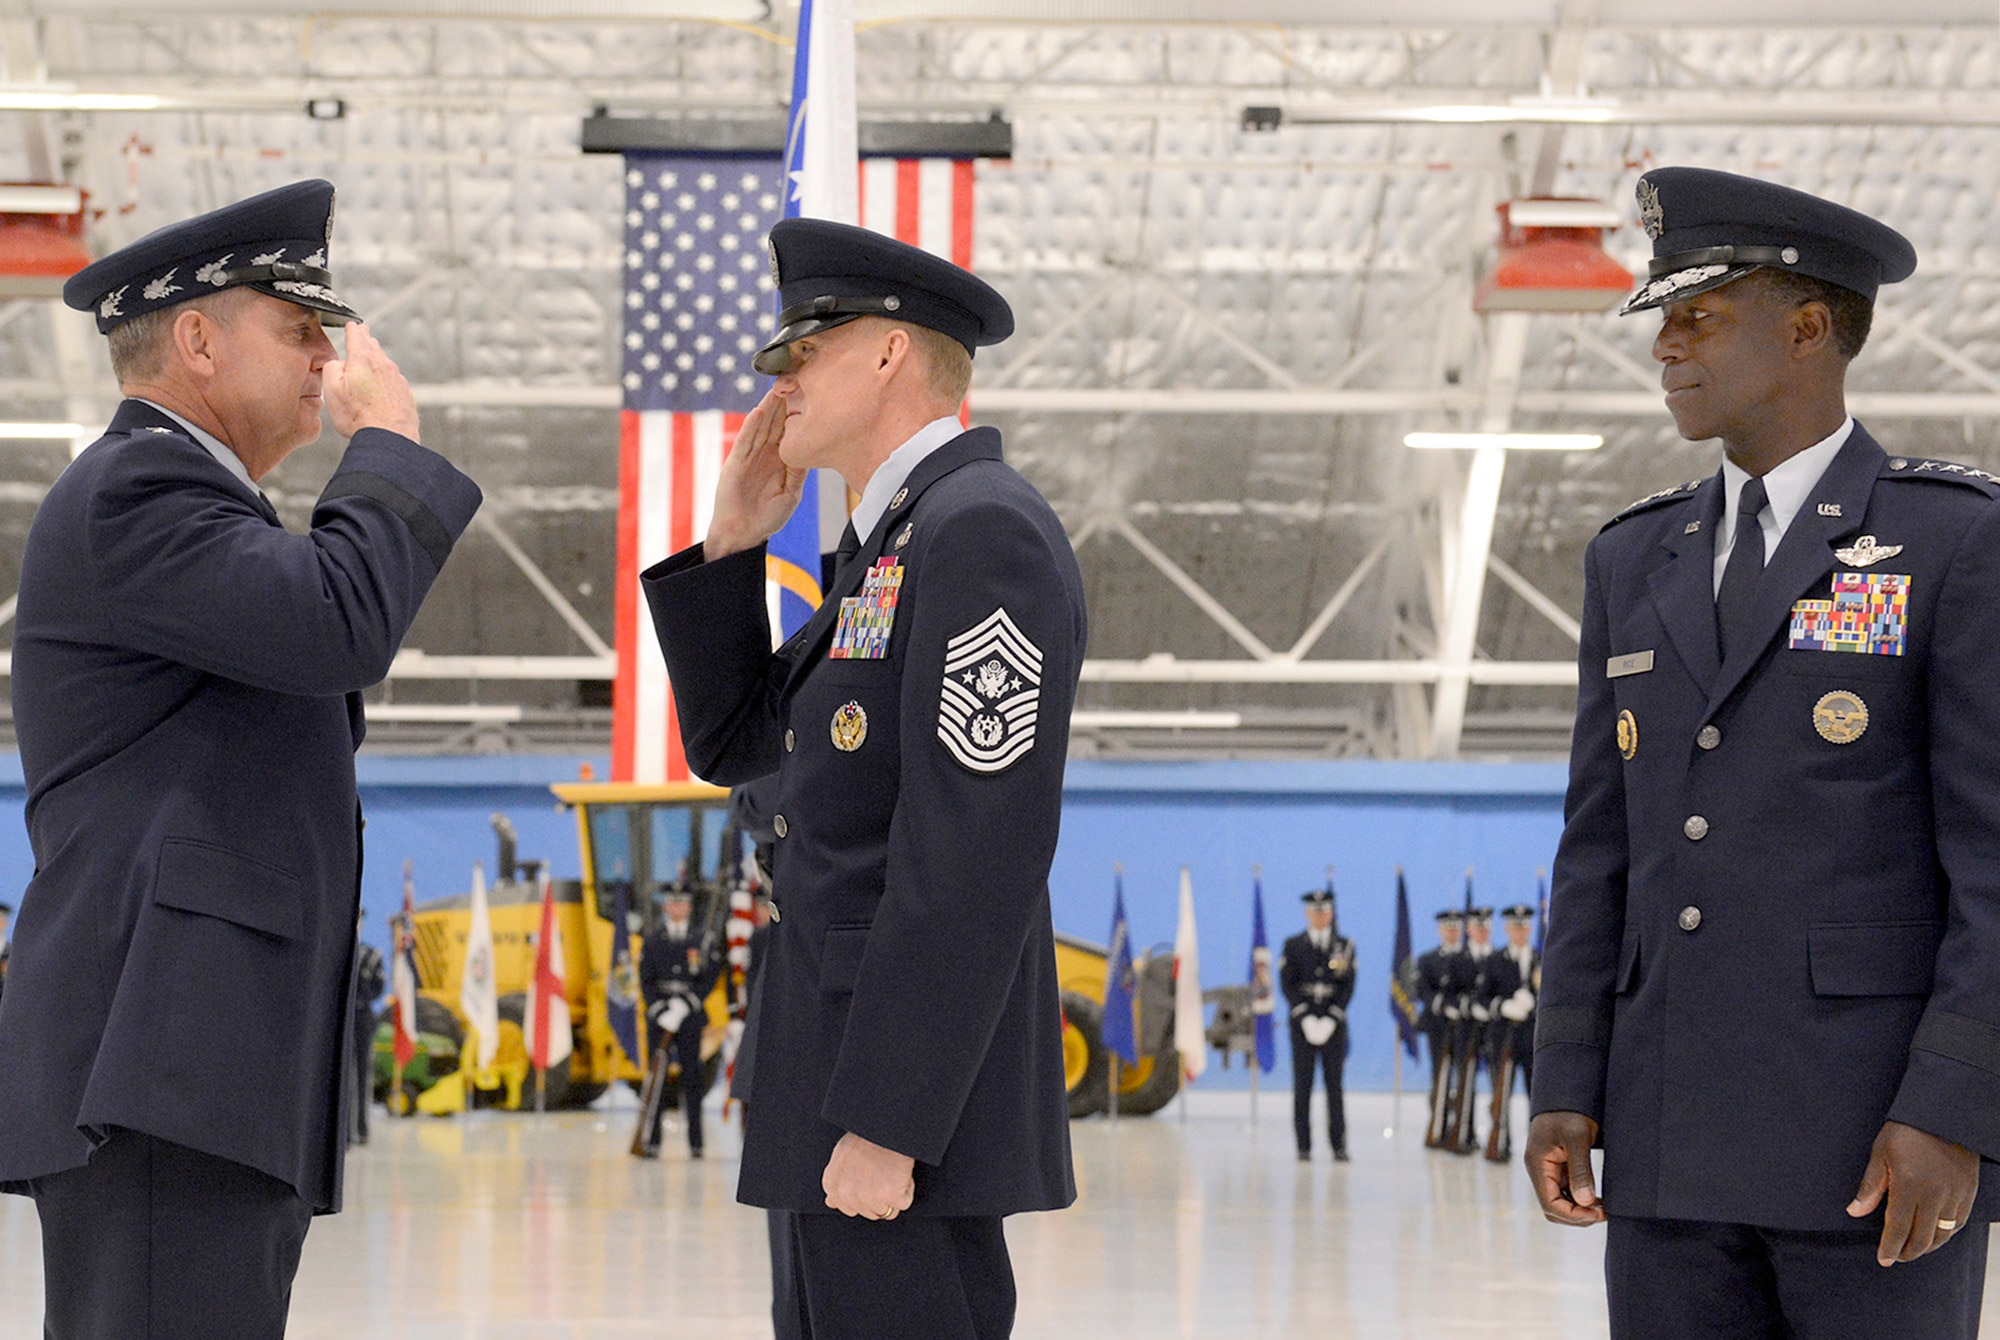 Air Force Chief of Staff Gen. Mark A. Welsh III, left, and Gen. Edward A. Rice Jr., the commander of Air Education and Training Command, congratulate the 17th Chief Master Sgt. of the Air Force James Cody during a transition ceremony at Joint Base Andrews, Md., on Jan. 24, 2013. (U.S. Air Force photo/Scott M. Ash)